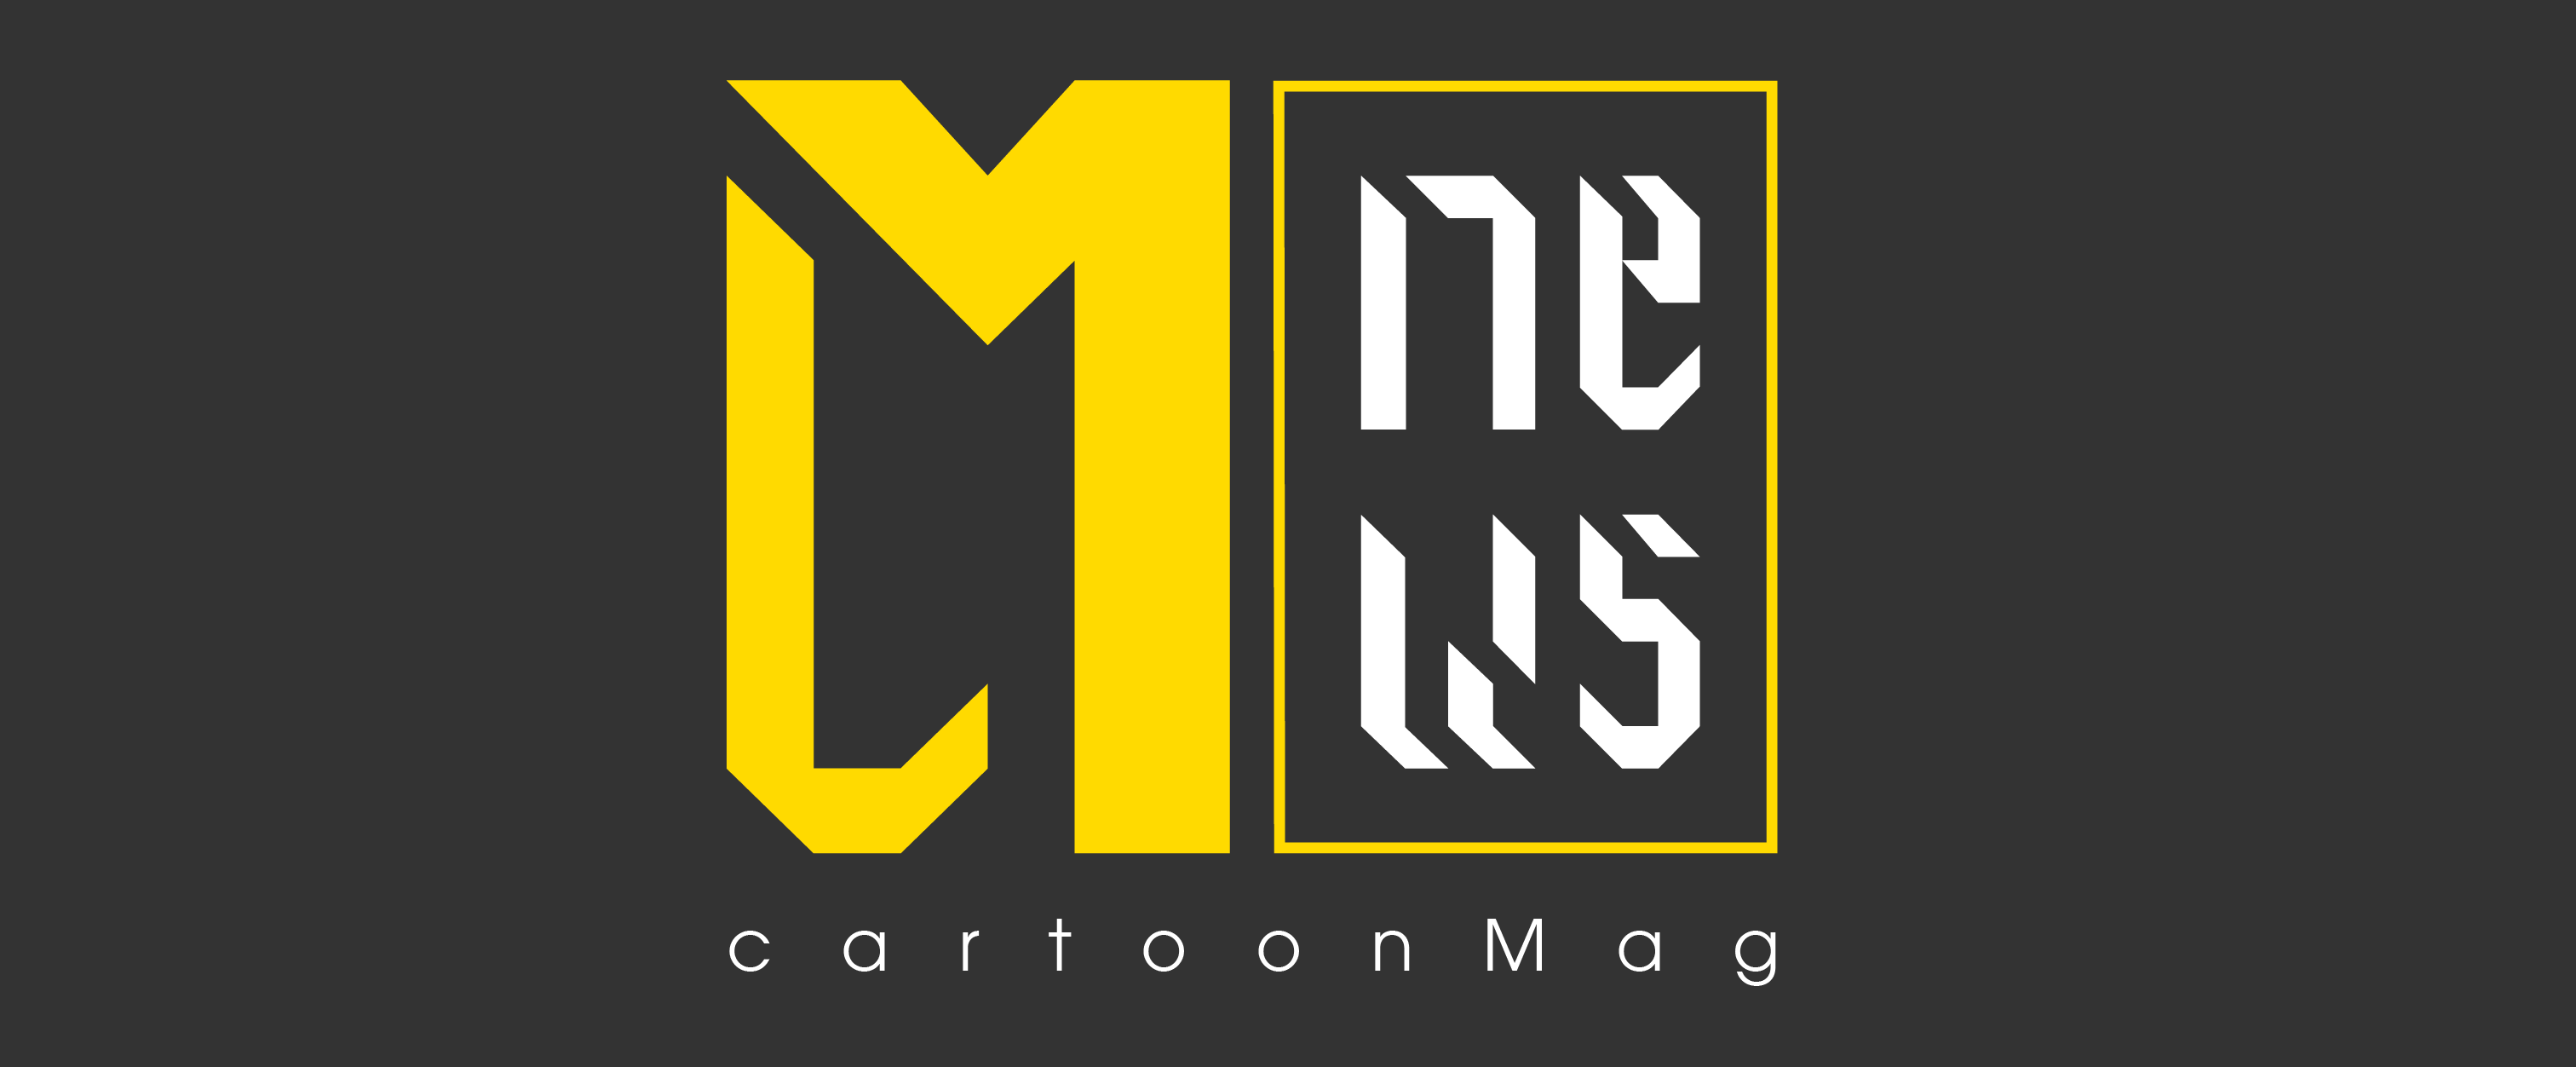 cartoonMag